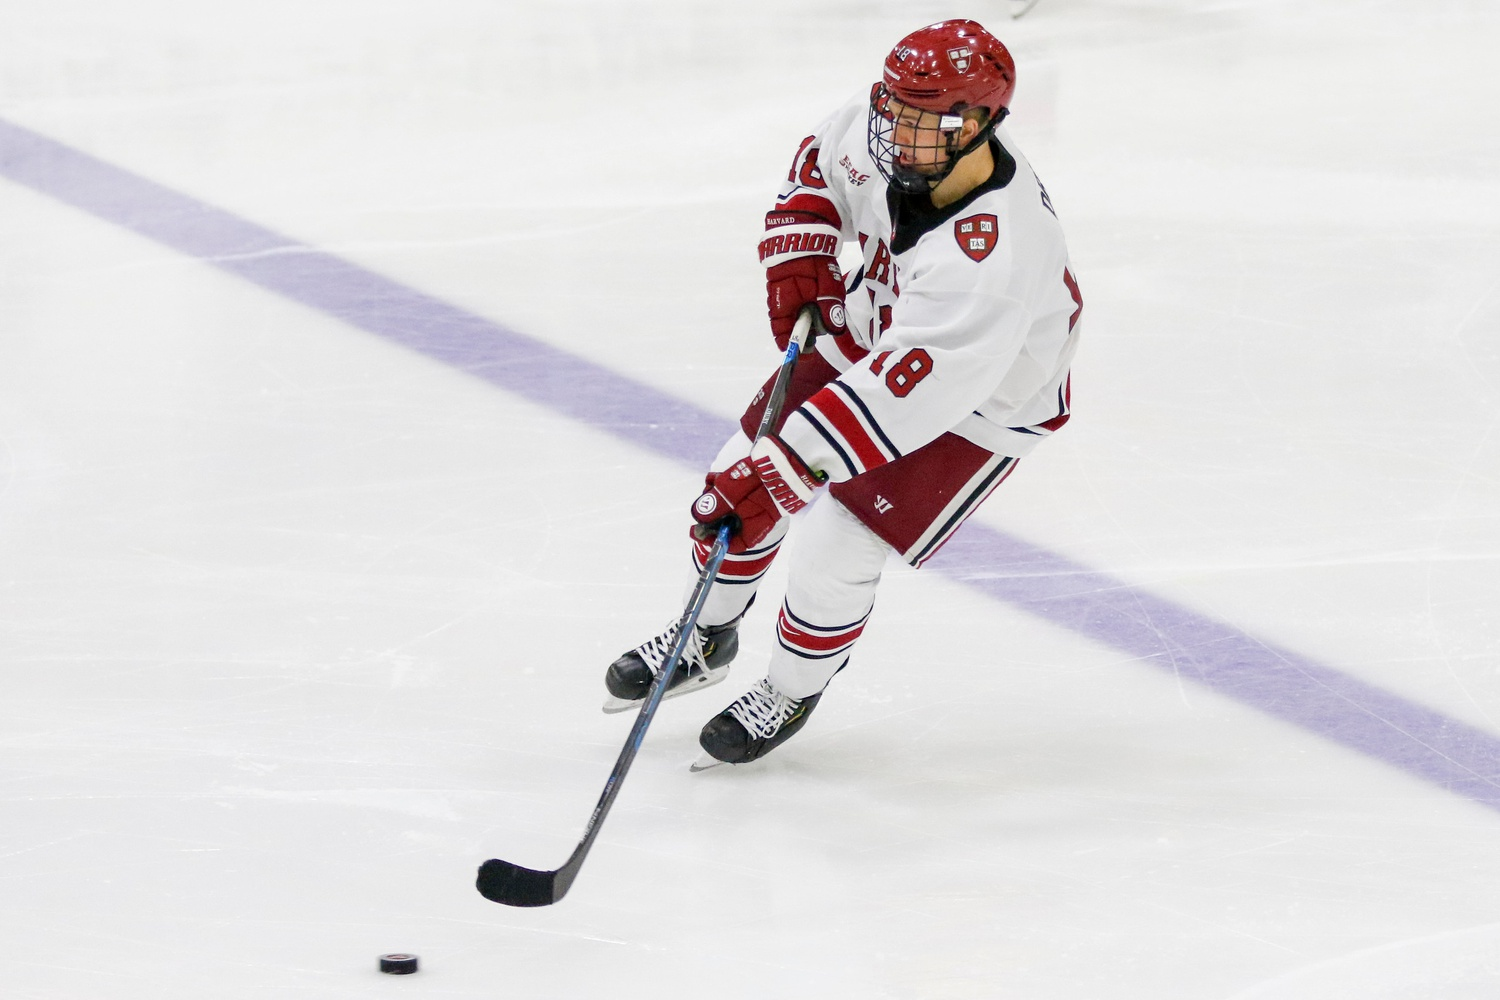 Sophomore center Jack Drury has emerged as the backbone of his ranked Crimson squad. Already a leader in the locker room, the forward is among the NCAA's highest per-game scorers this season.